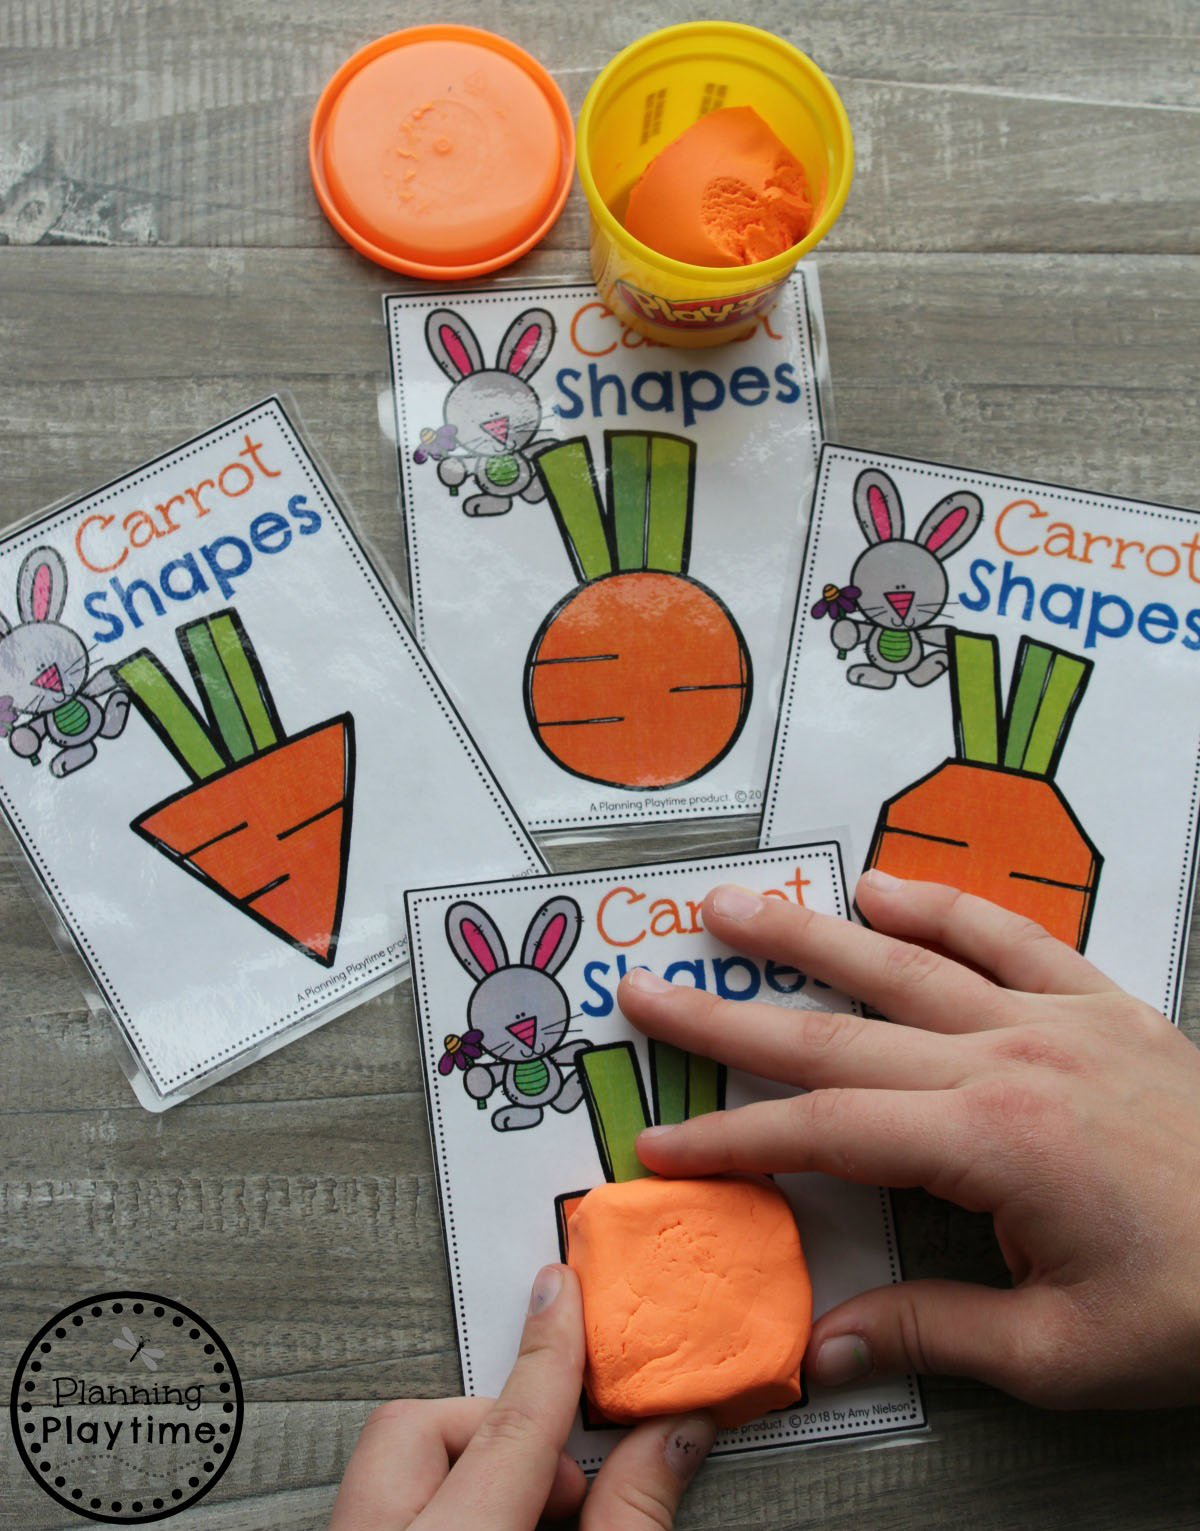 Playdough Carrots Make a Shape Easter Game for Preschool. #easter #preschool #easteractivities #easterpreschool #planningplaytime #shapesworksheets #preschoolmath